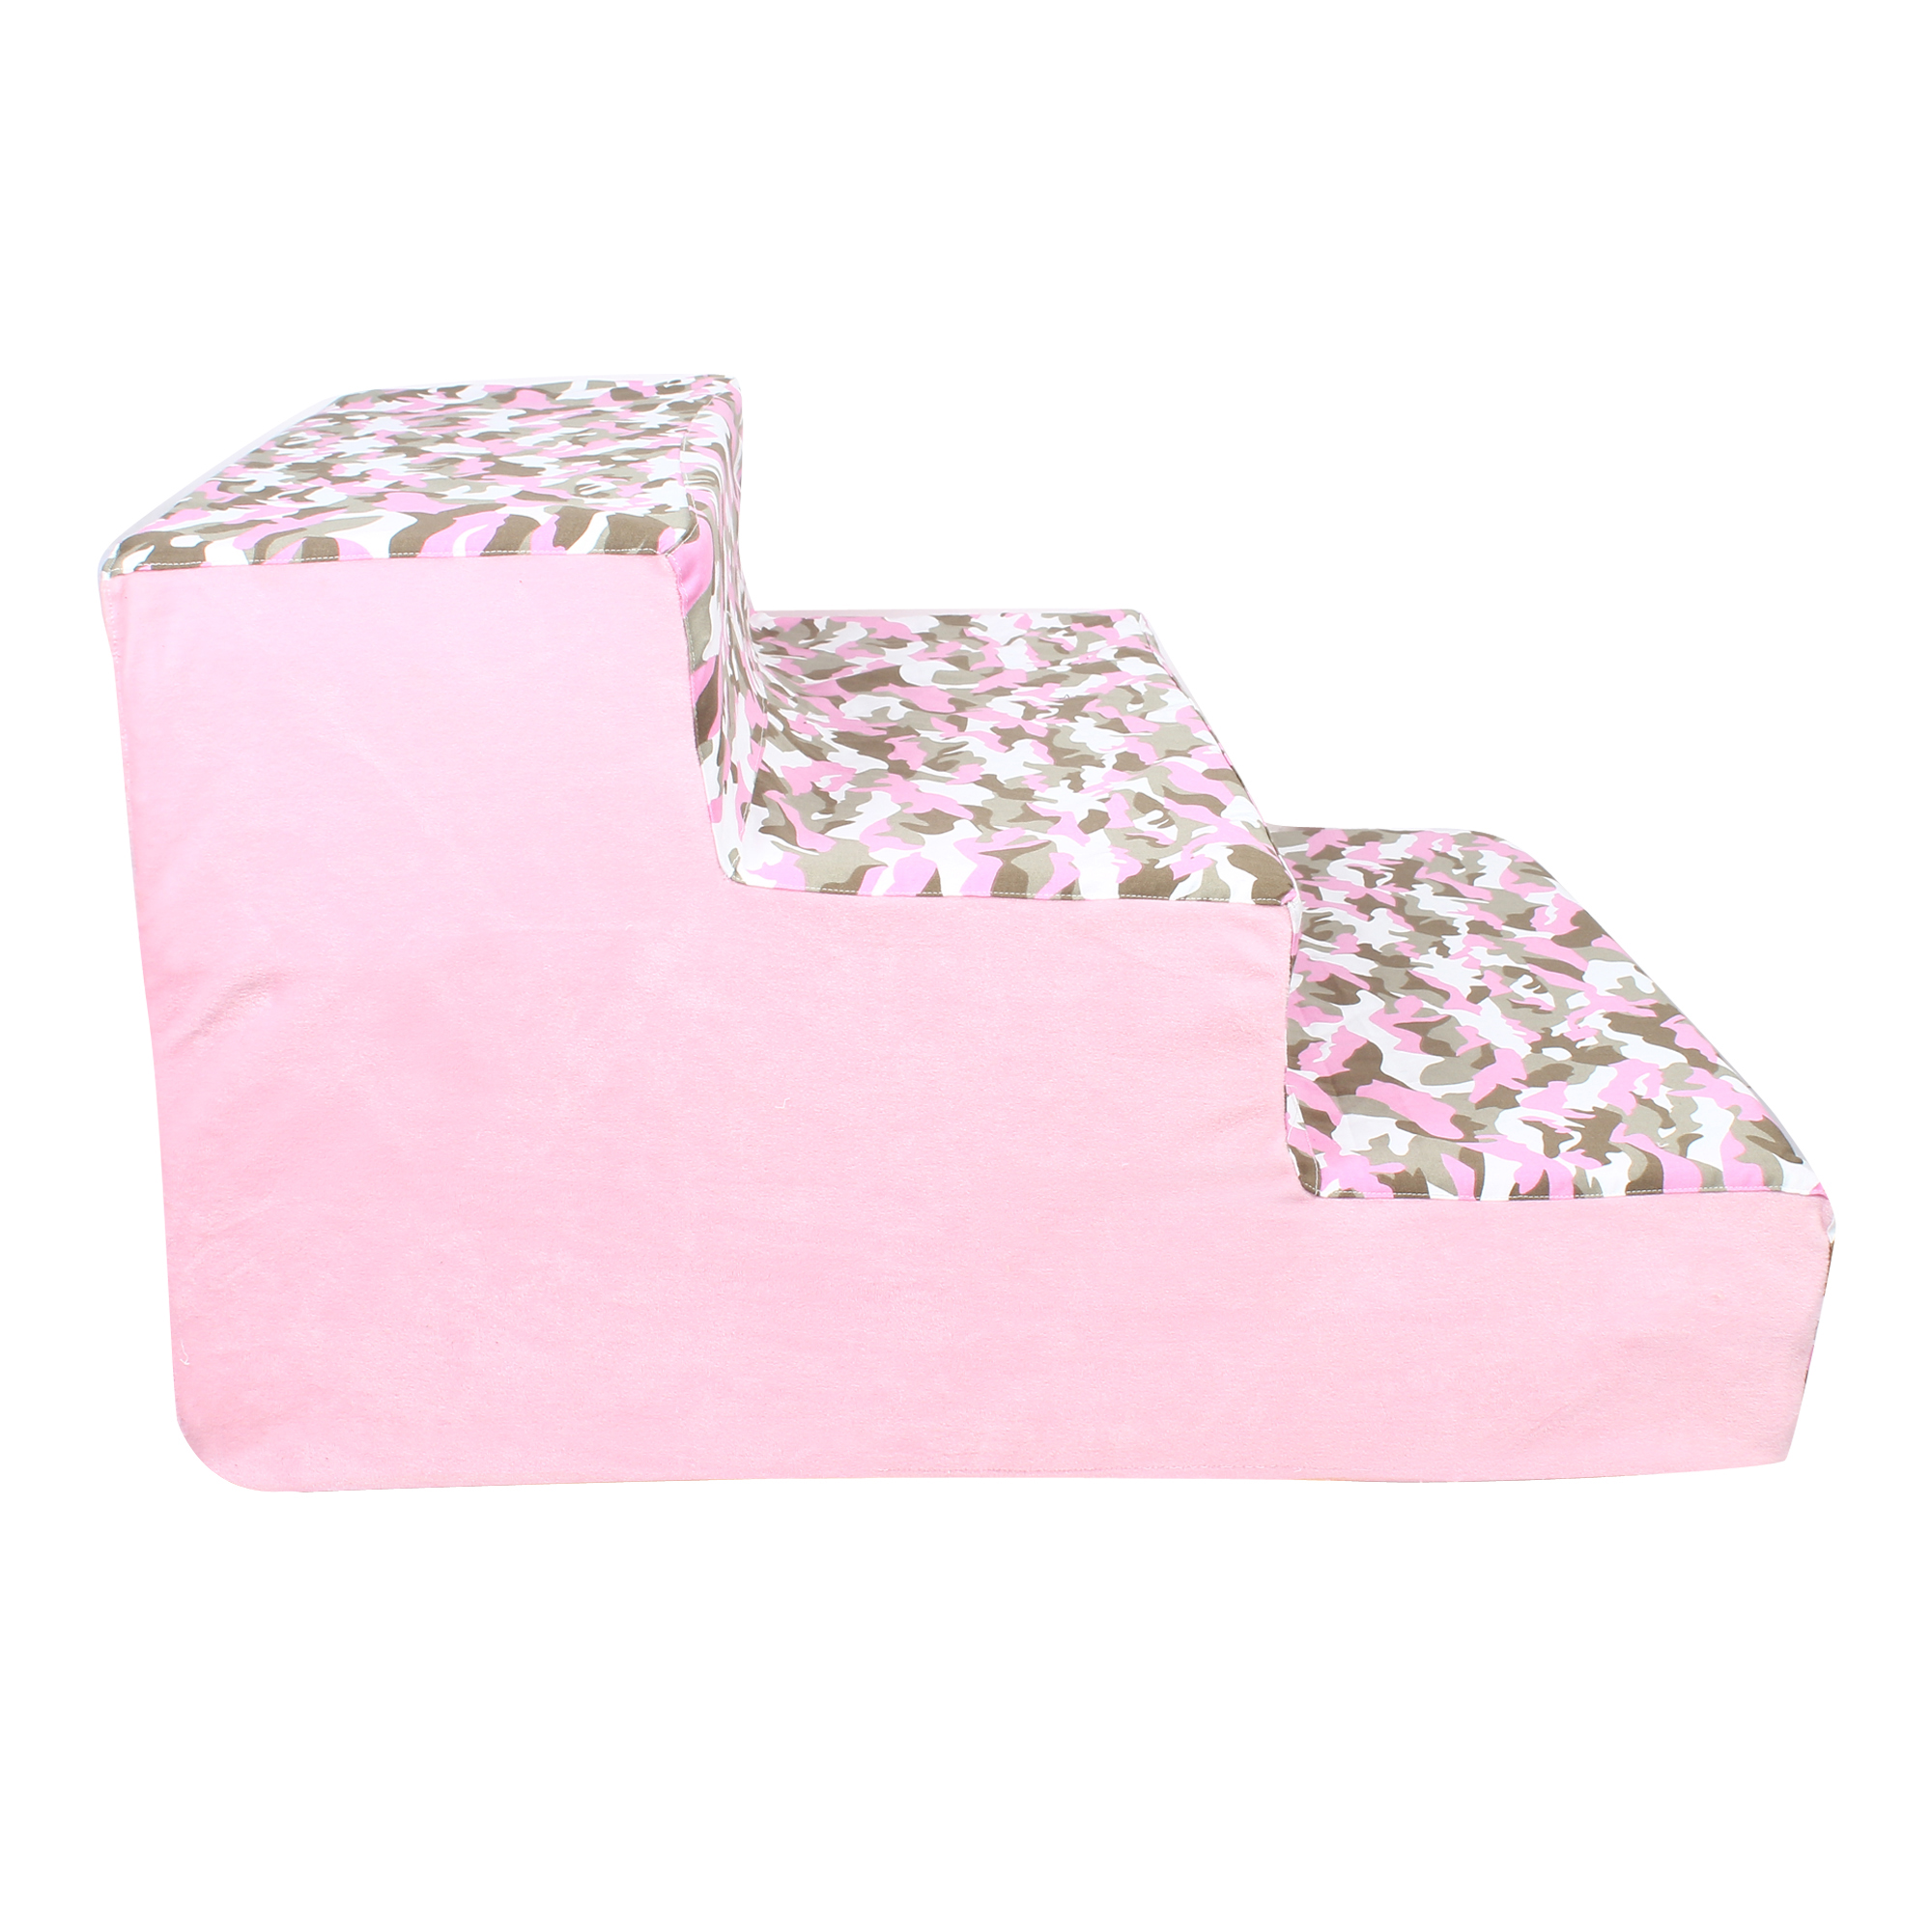 Douge Couture dog/cat stairs/ladder3 Steps Ramp Ladder pink army print